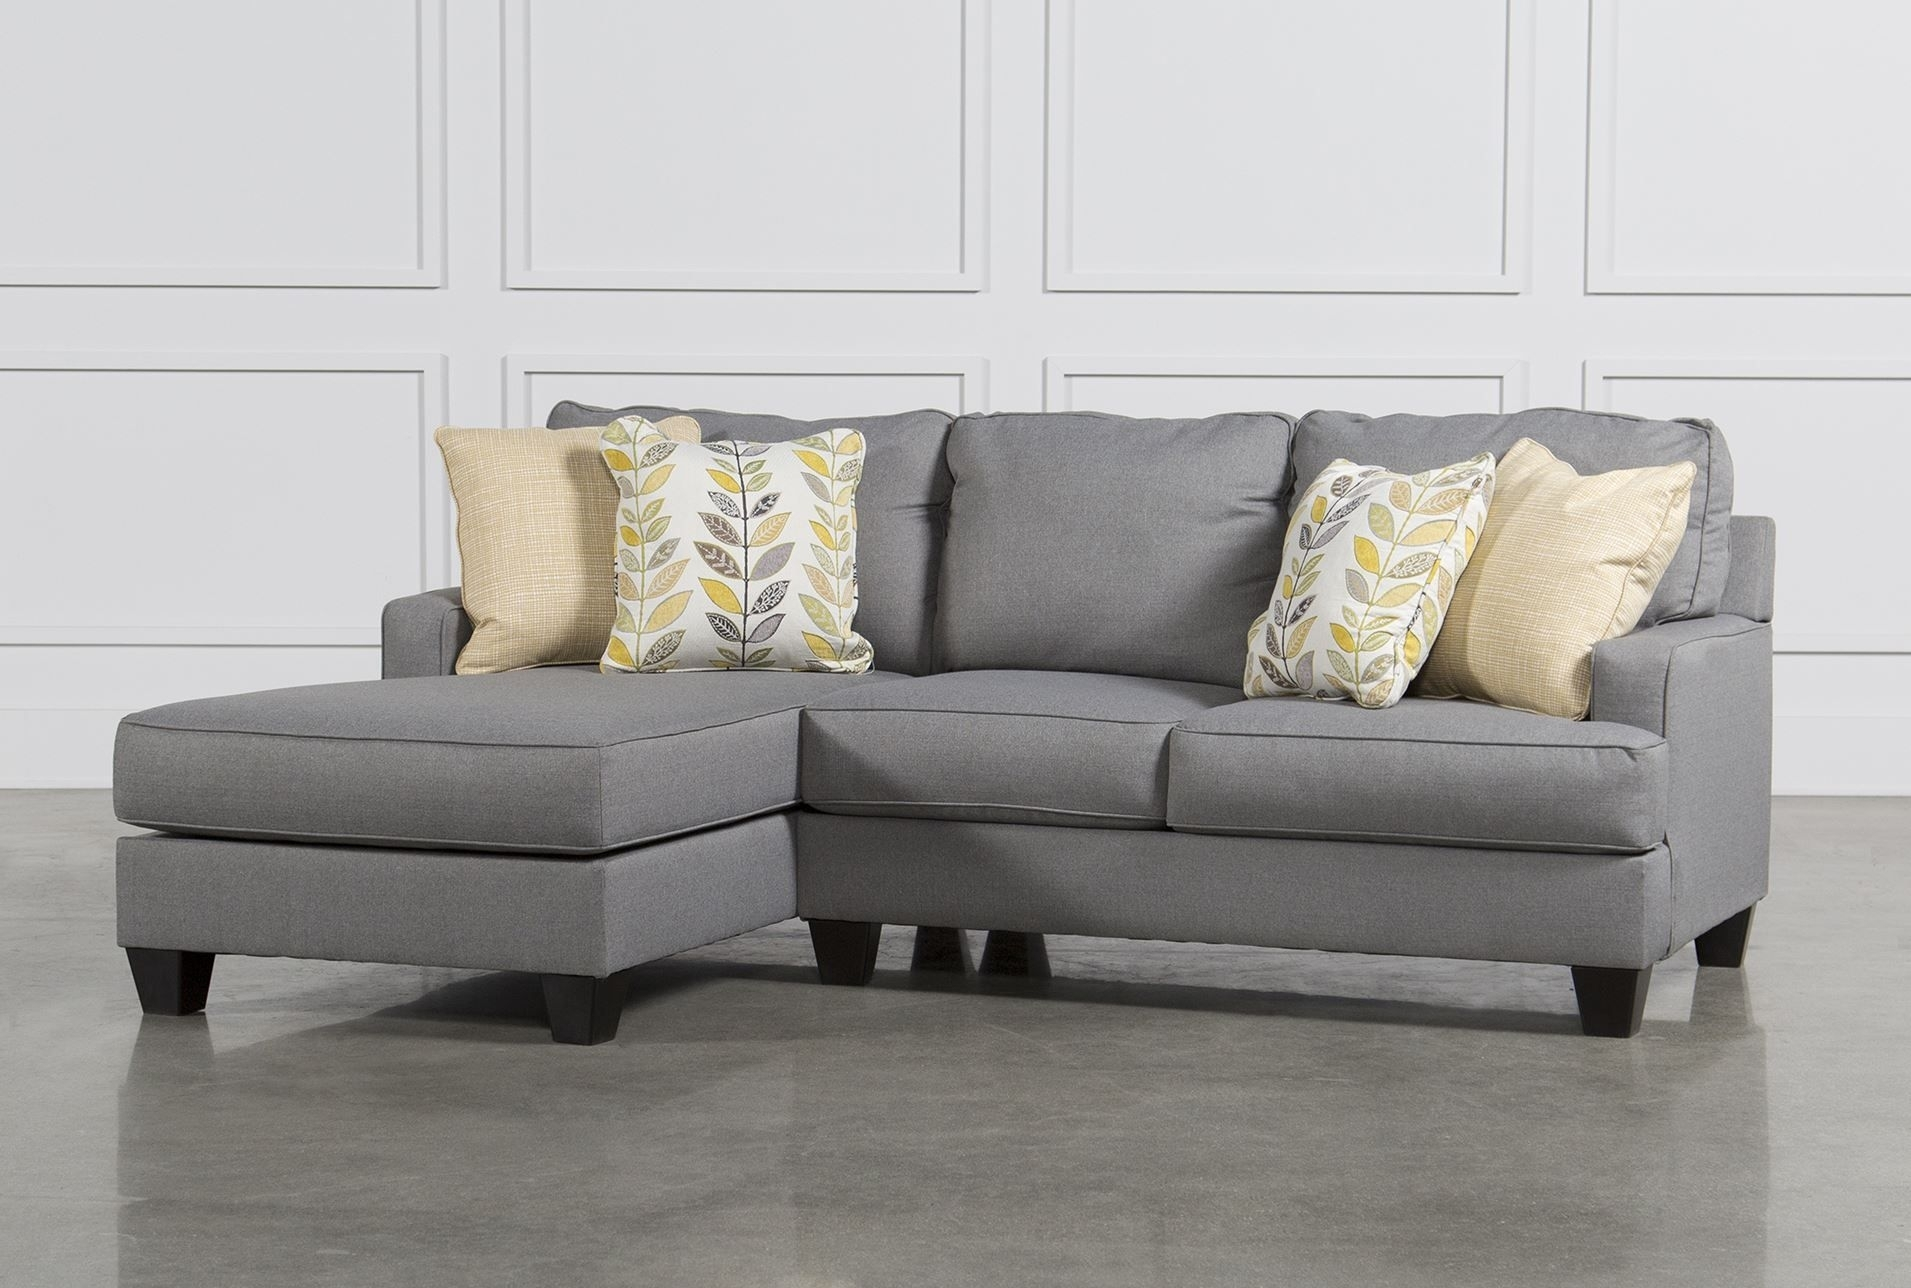 Chamberly 2 Piece Sectional W/laf Chaise – Signature | Light Casual Throughout Delano 2 Piece Sectionals With Laf Oversized Chaise (Image 6 of 25)